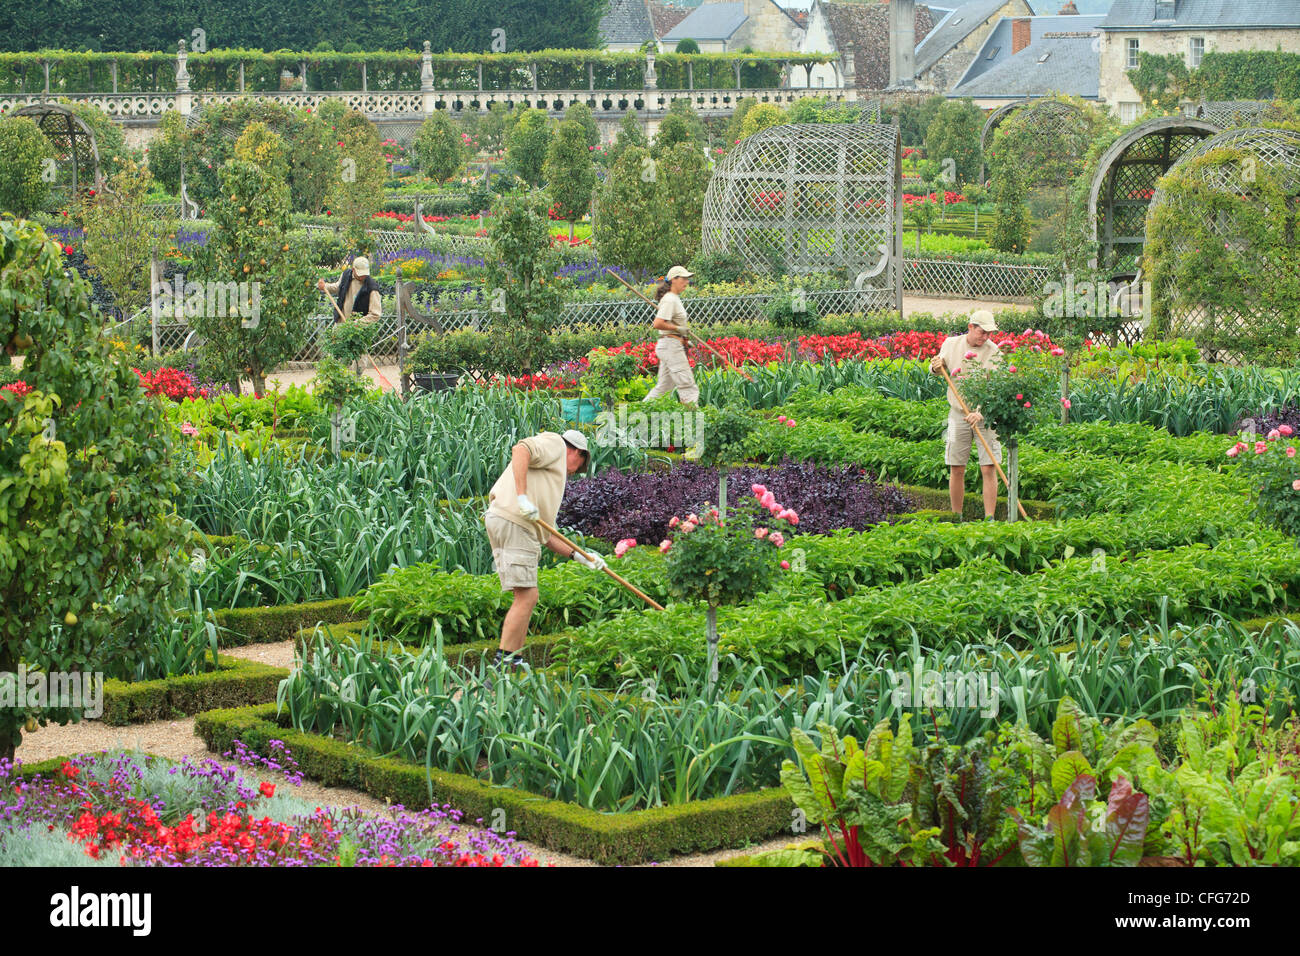 France, Gardens of the castle of Villandry, the gardeners in the kitchen garden treated like a 'jardin à - Stock Image